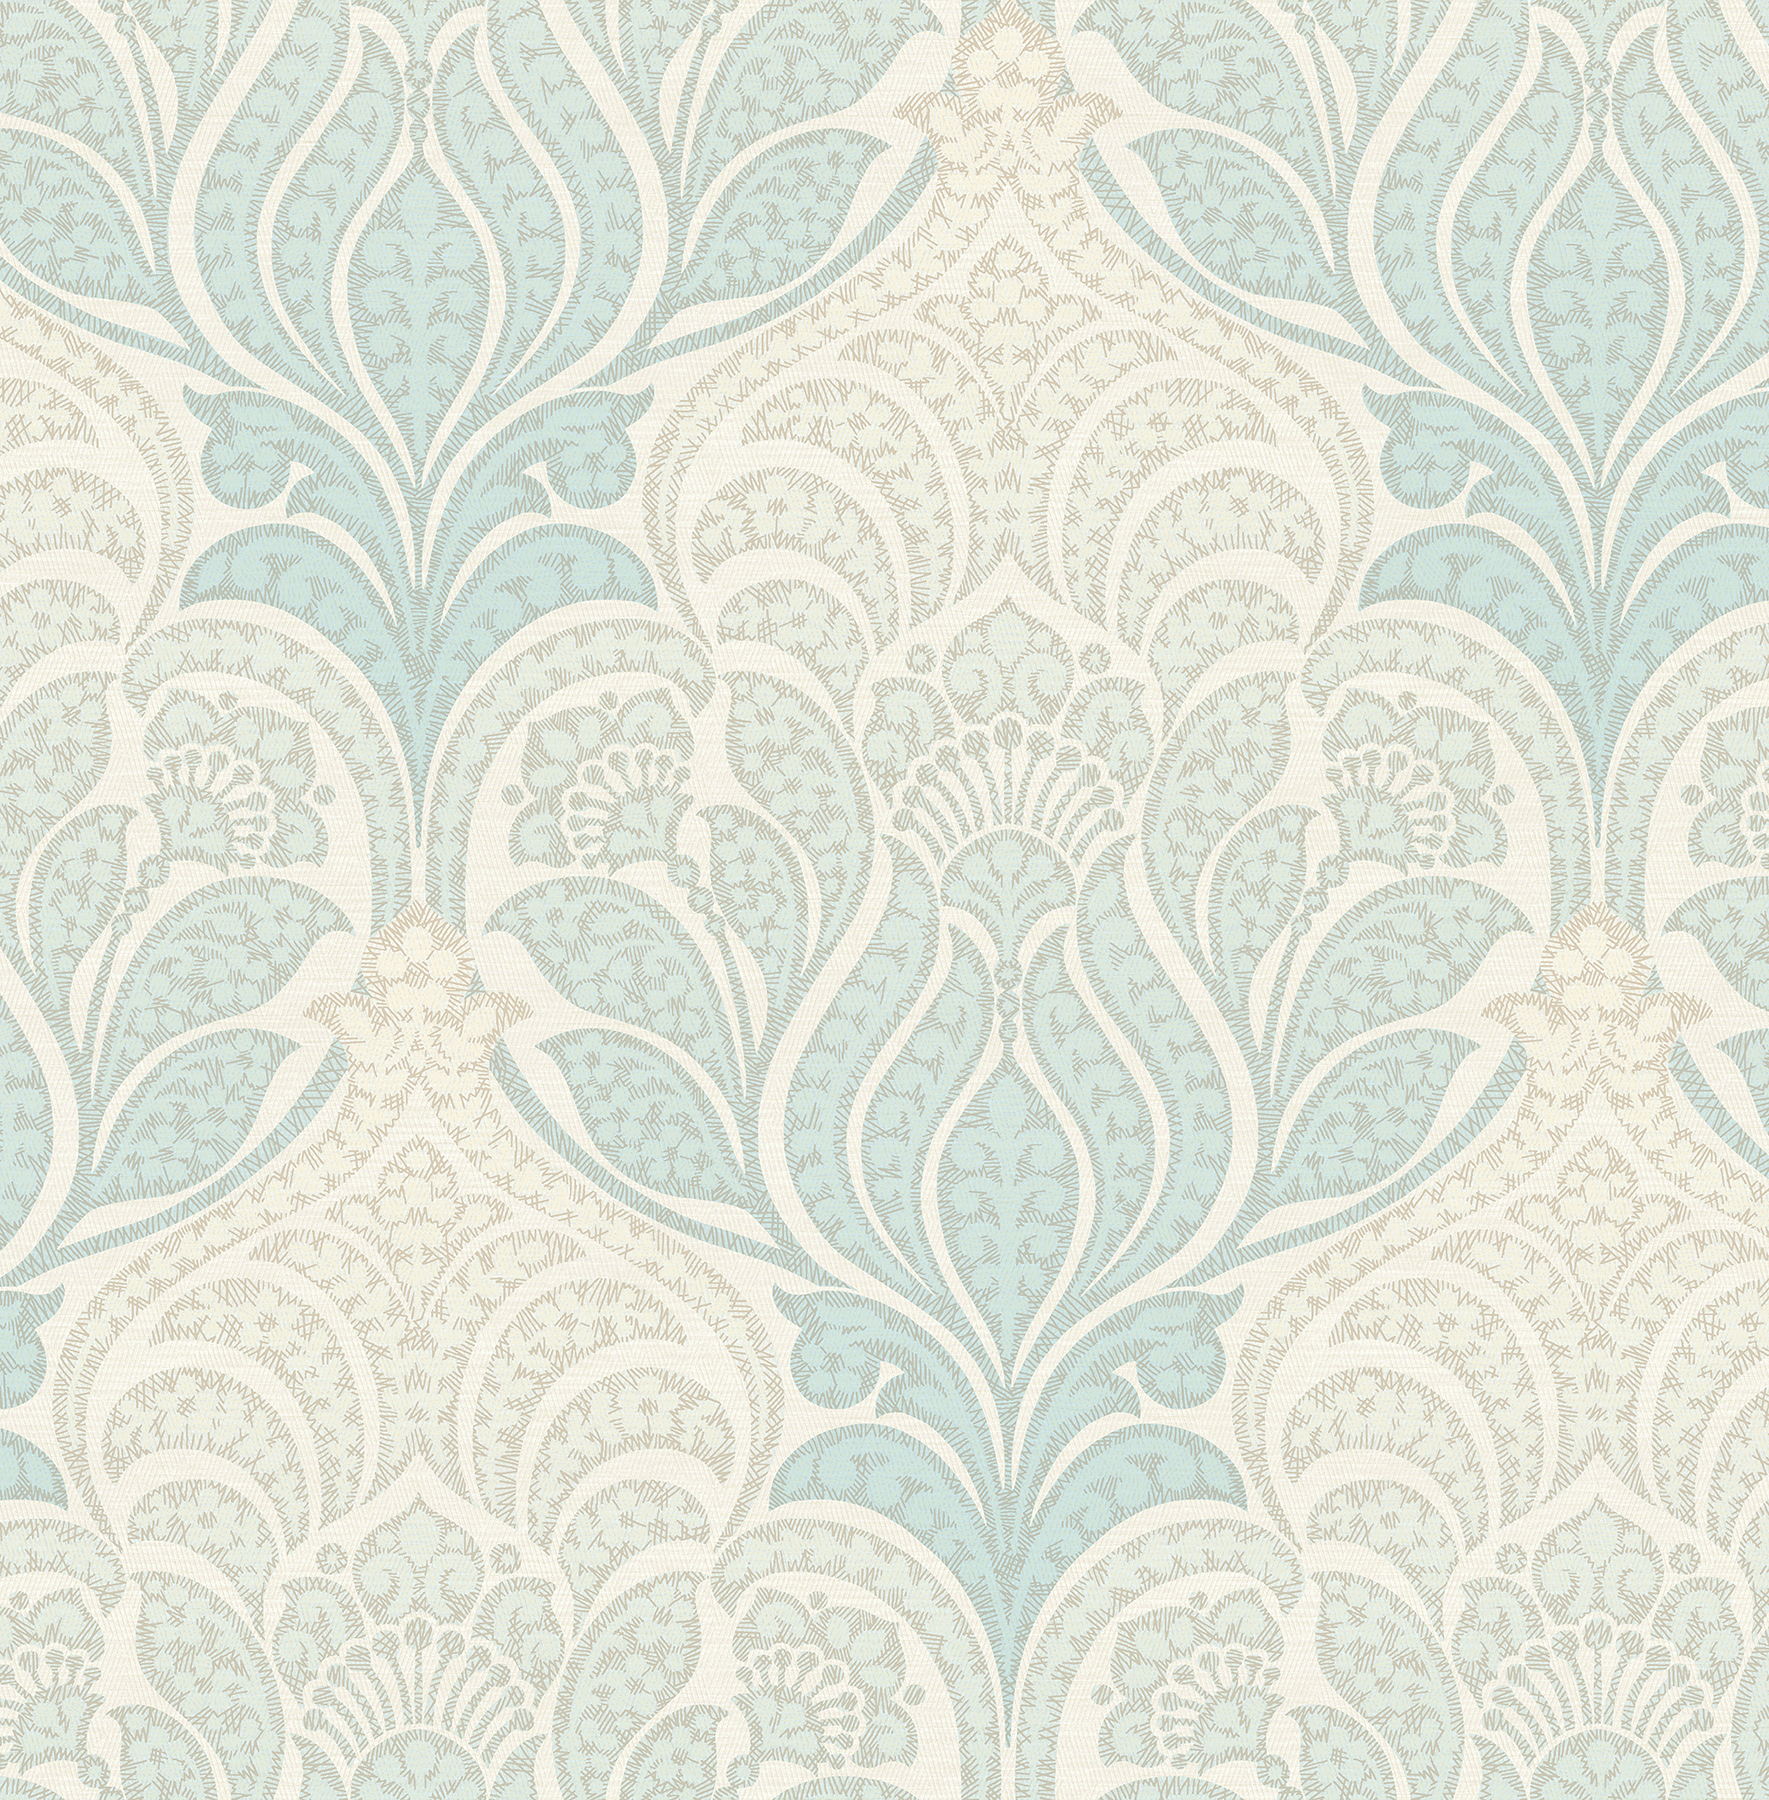 Kenneth James by Brewster 2671-22426 Twill Sage Damask Wallpaper